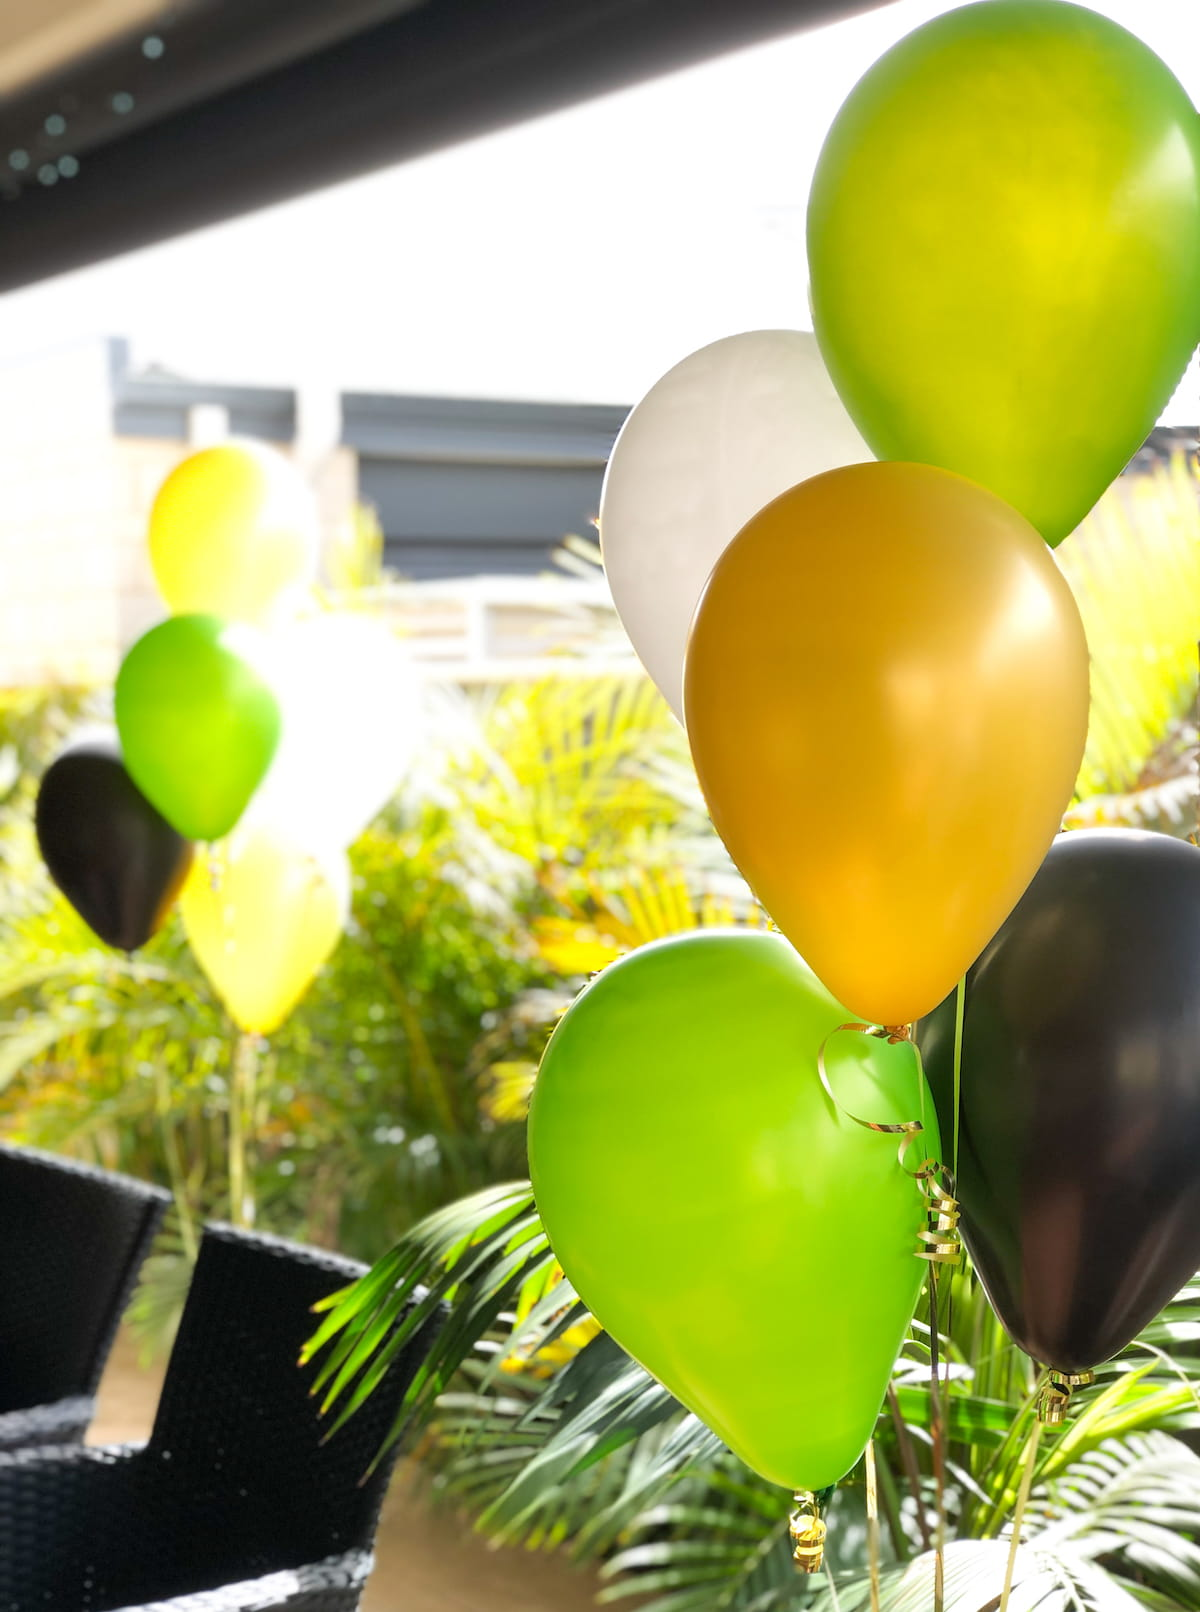 Outdoor party balloon decor